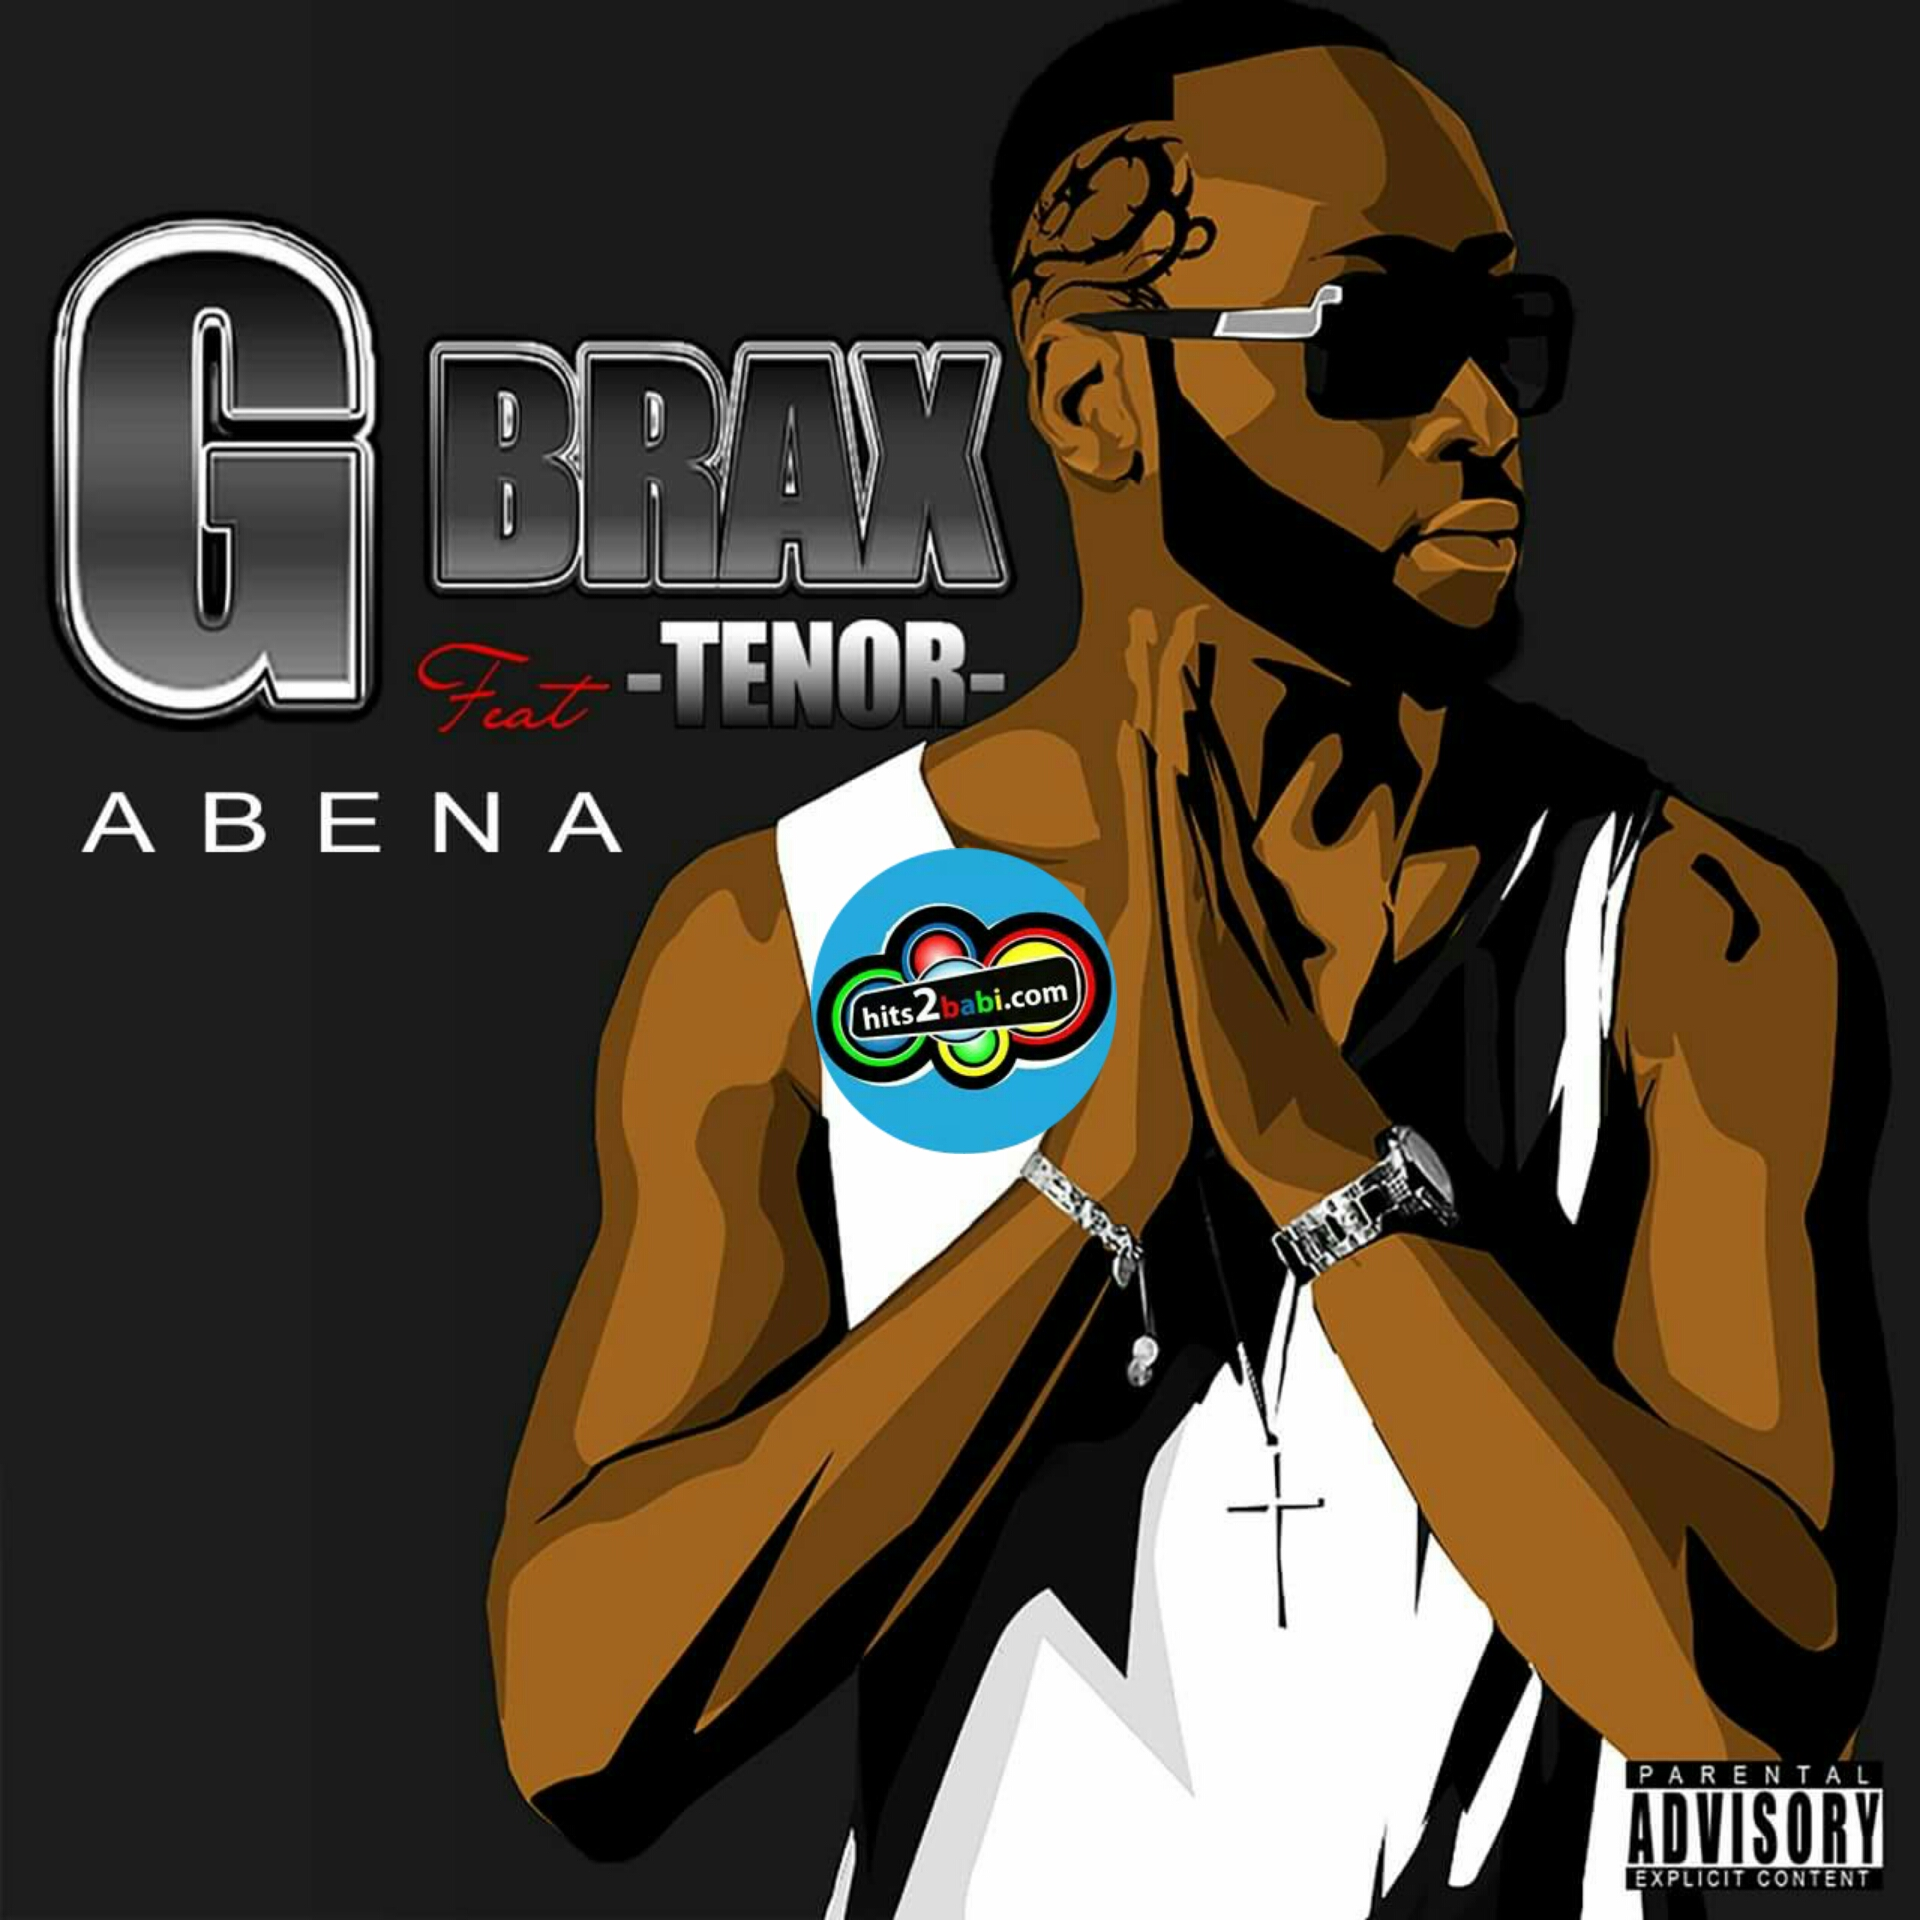 GBRAX FEAT TENOR - ABENA  by 1 + 1 Records